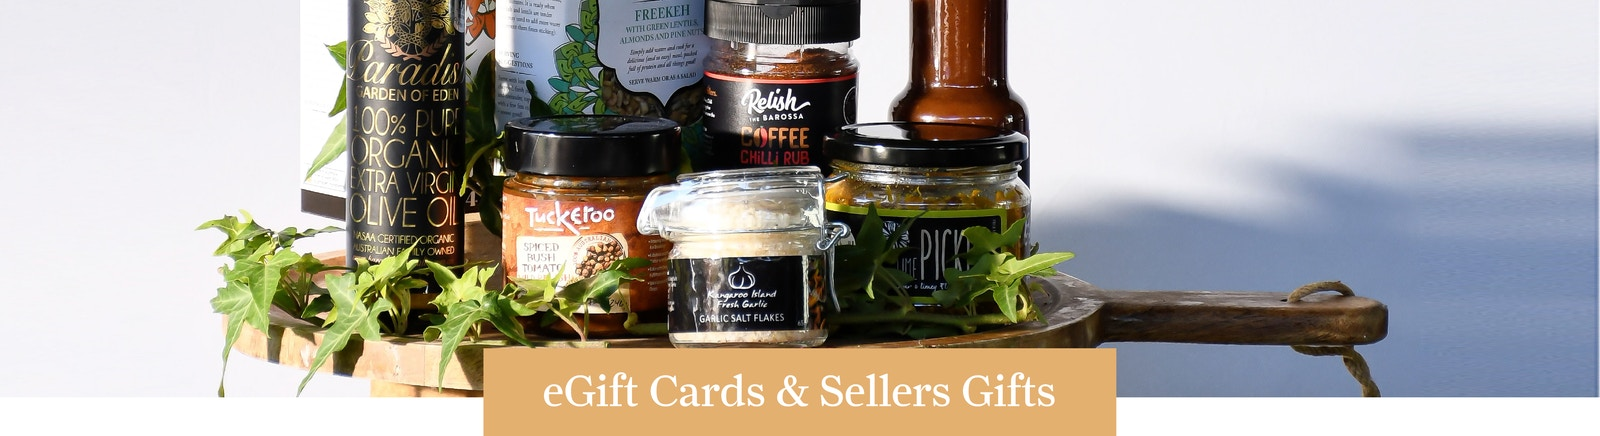 Gift Cards and Vouchers Banner